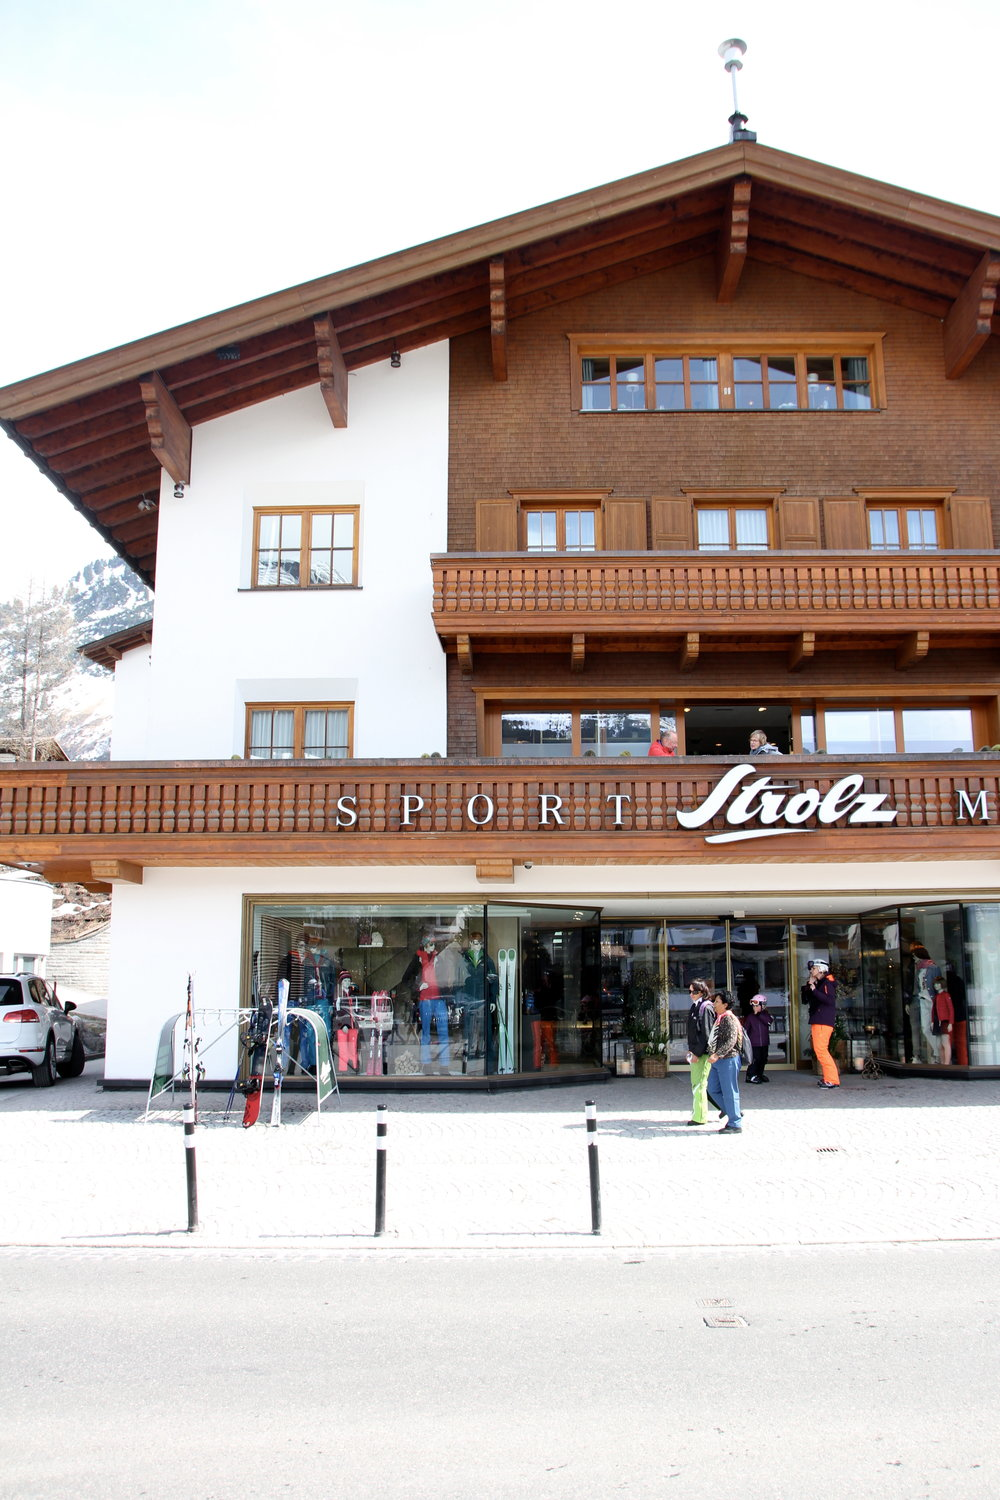 The place to go for custom ski boots and glam gear. Strolz, Lech, Austria.